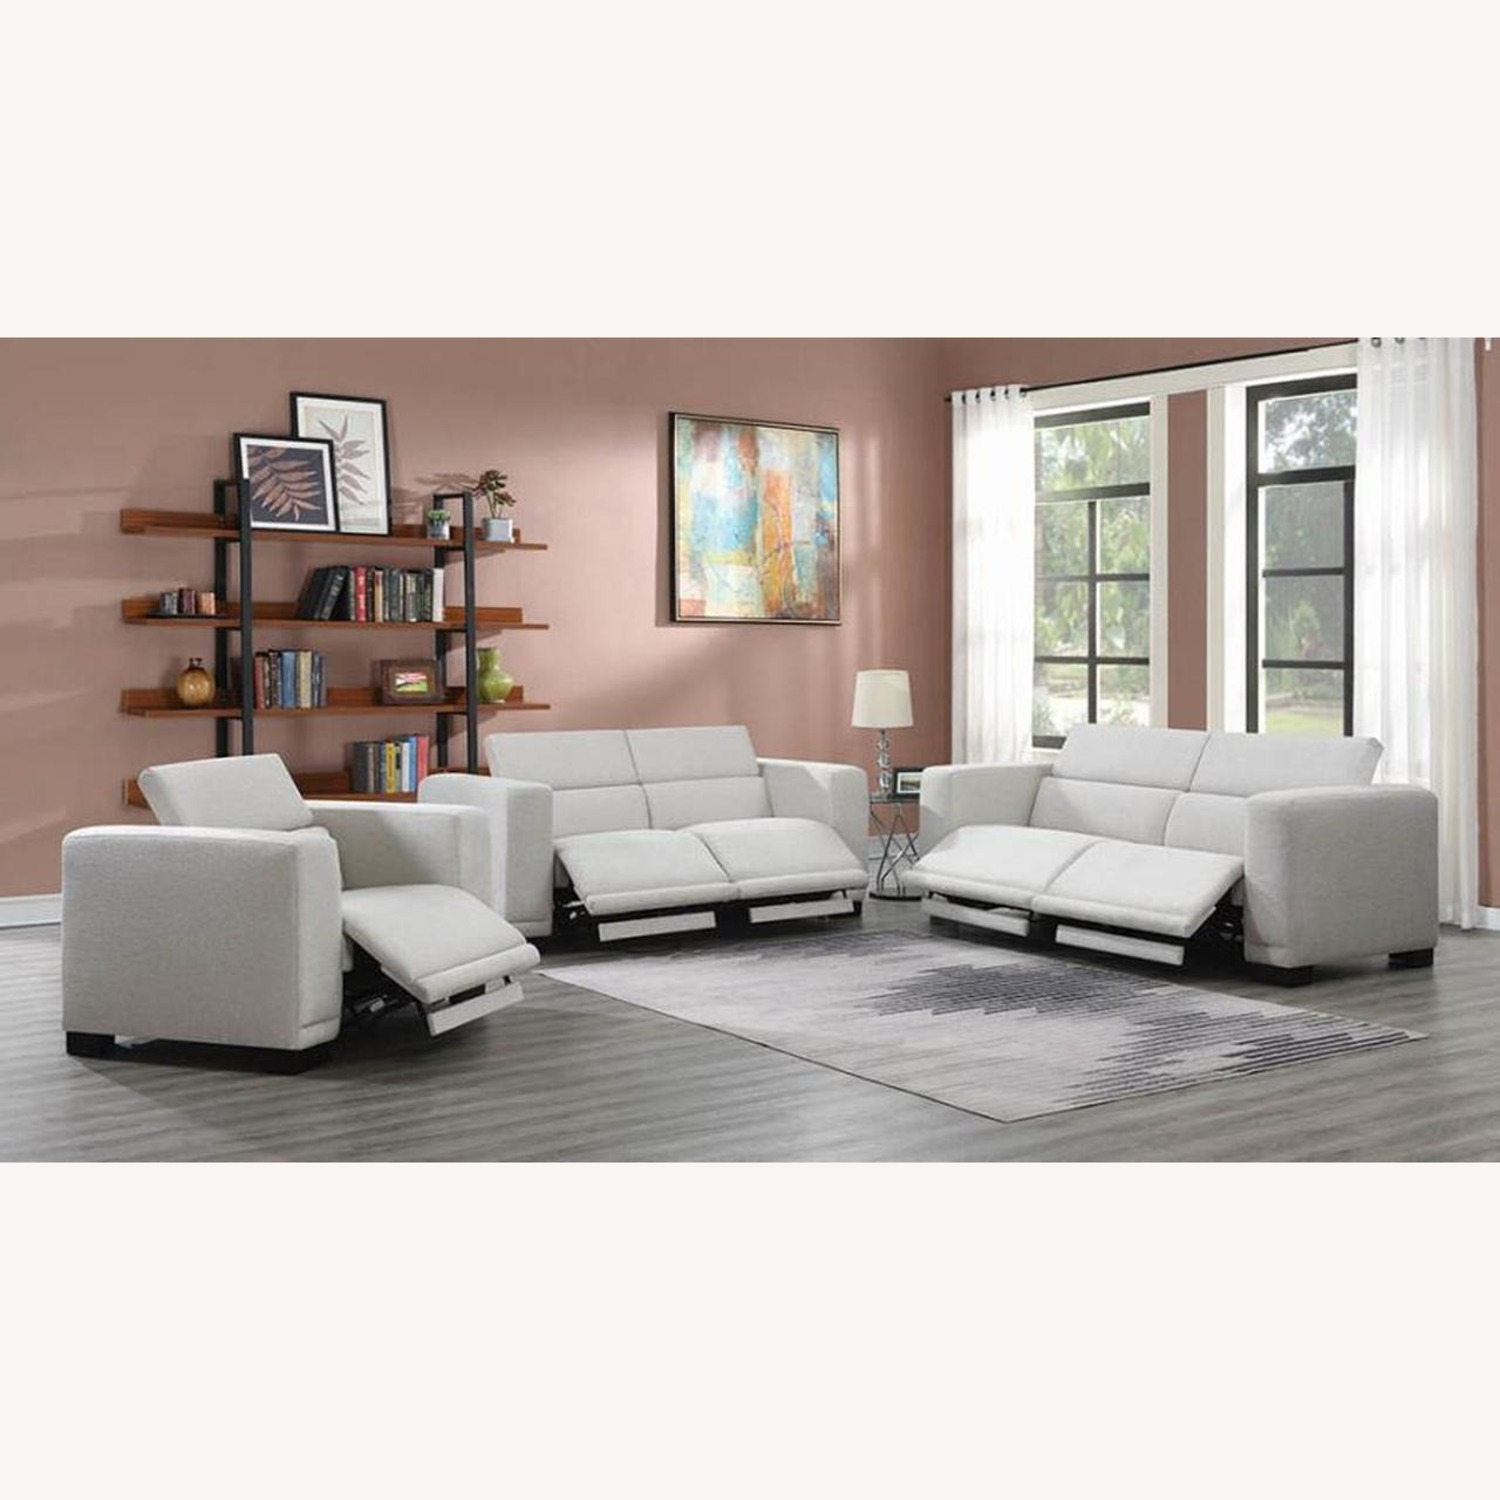 Power Recliner In Beige Chenille Fabric - image-8